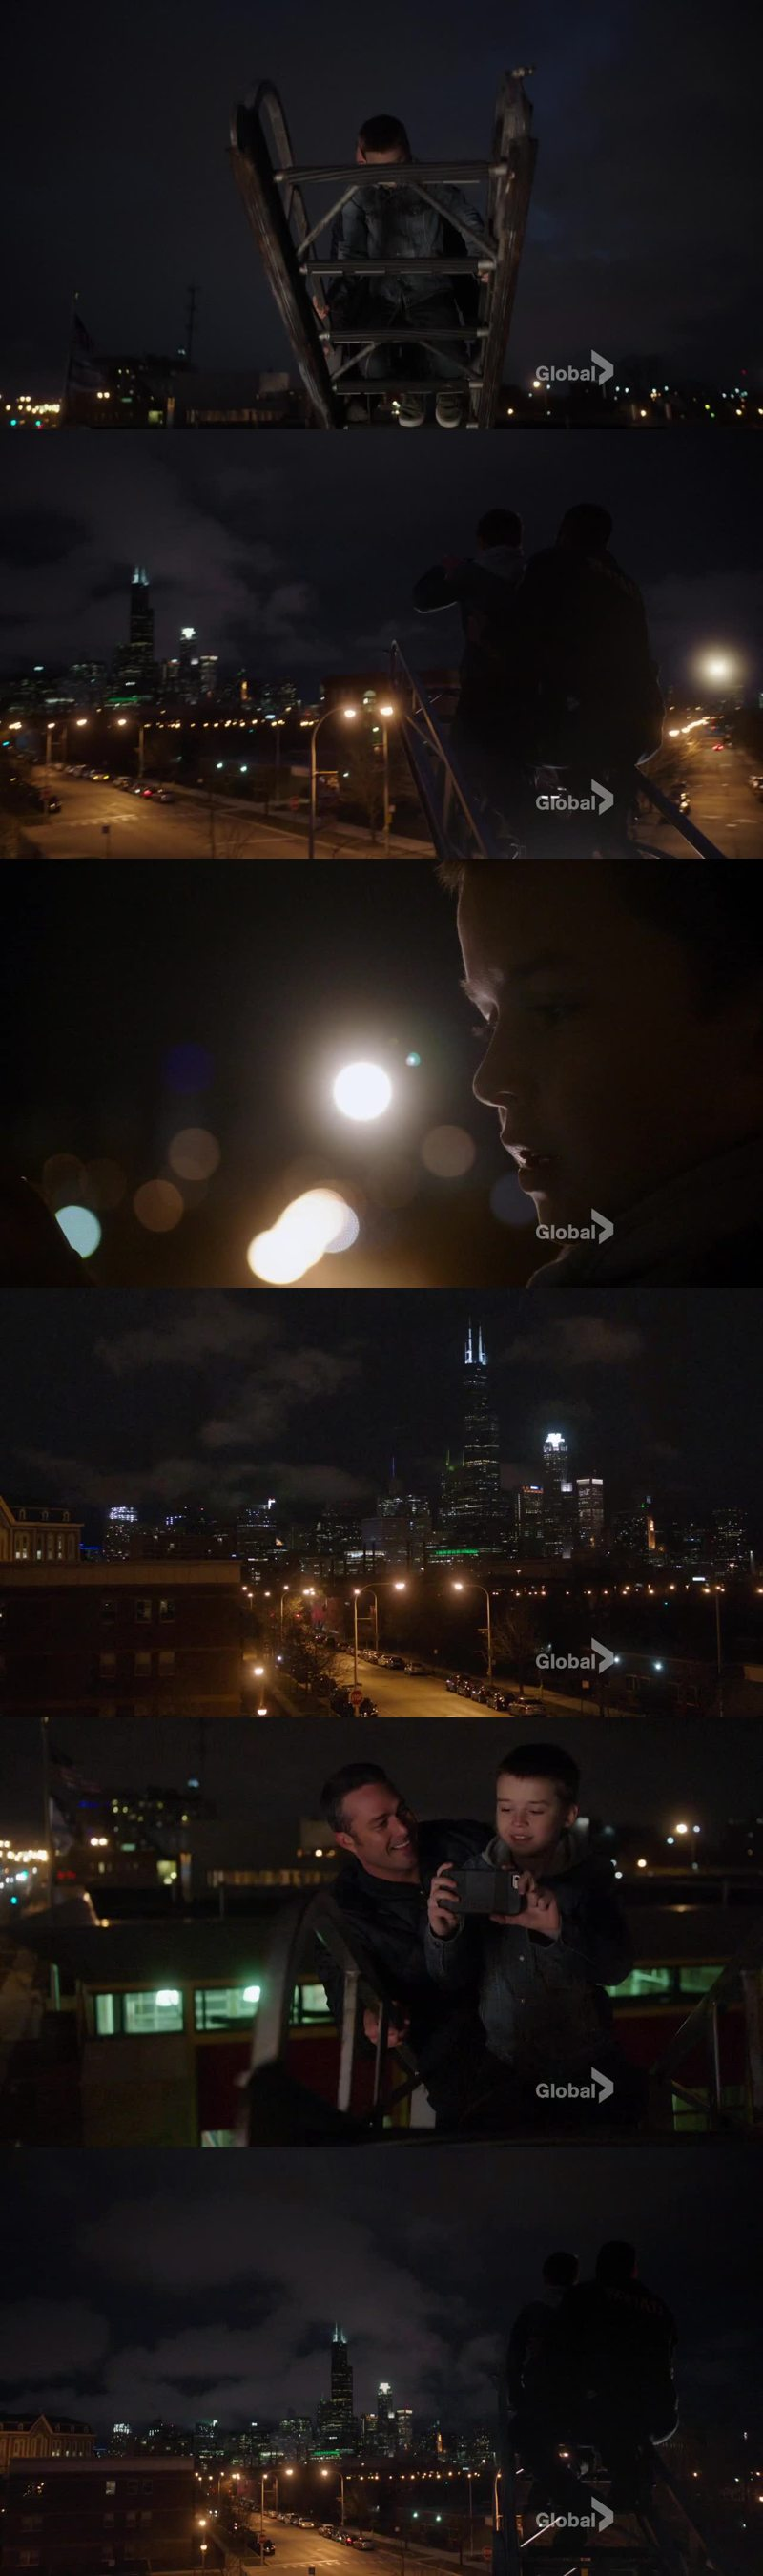 That scene as incredibly beautiful for so many reasons, the main one being the Chicago skyline.  Guys, I'll never regret moving in Chicago. That view is amazing, day or night, I can't stop loving it. The beauty of Chicago.  Come visit! I'll show you the city and the firehouse 😉